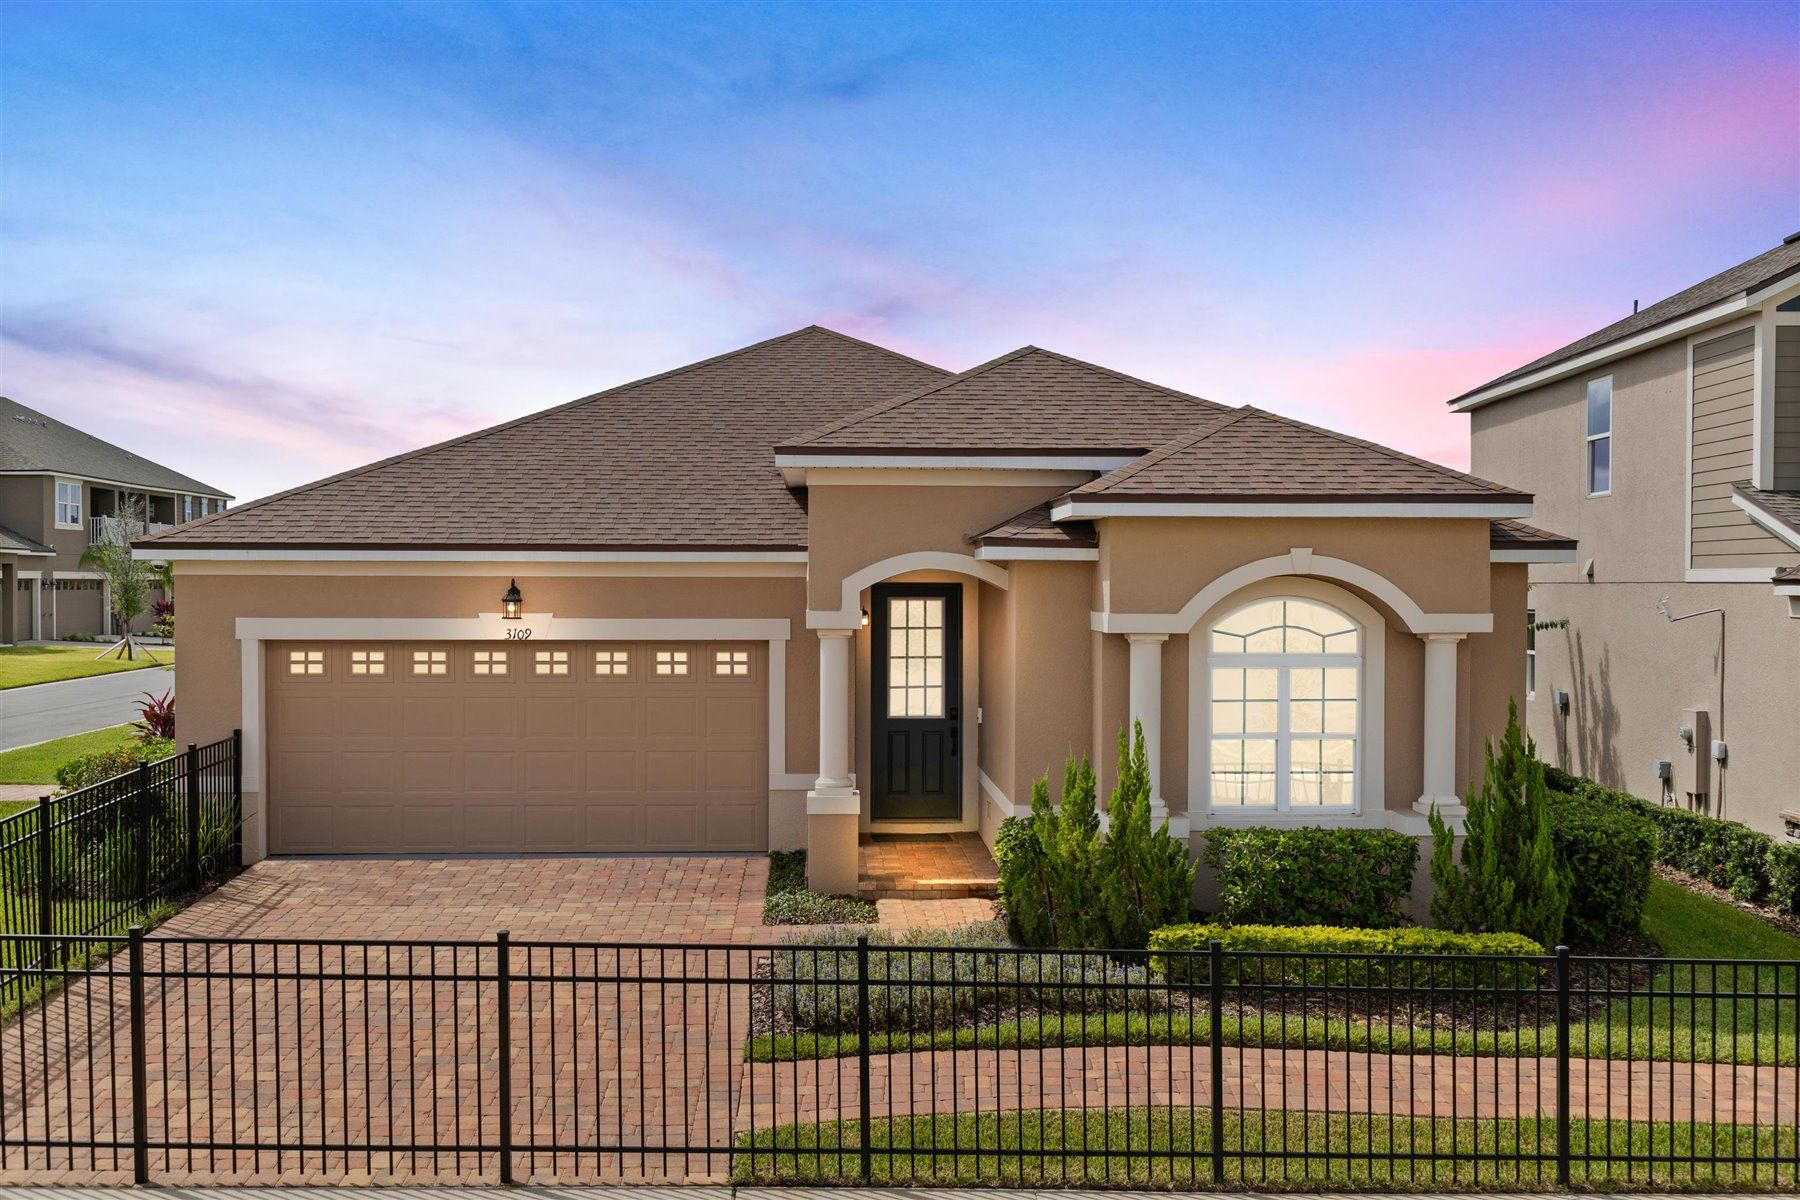 Exterior:PHOTO REPRESENTATION OF CRESCENT MODEL HOME